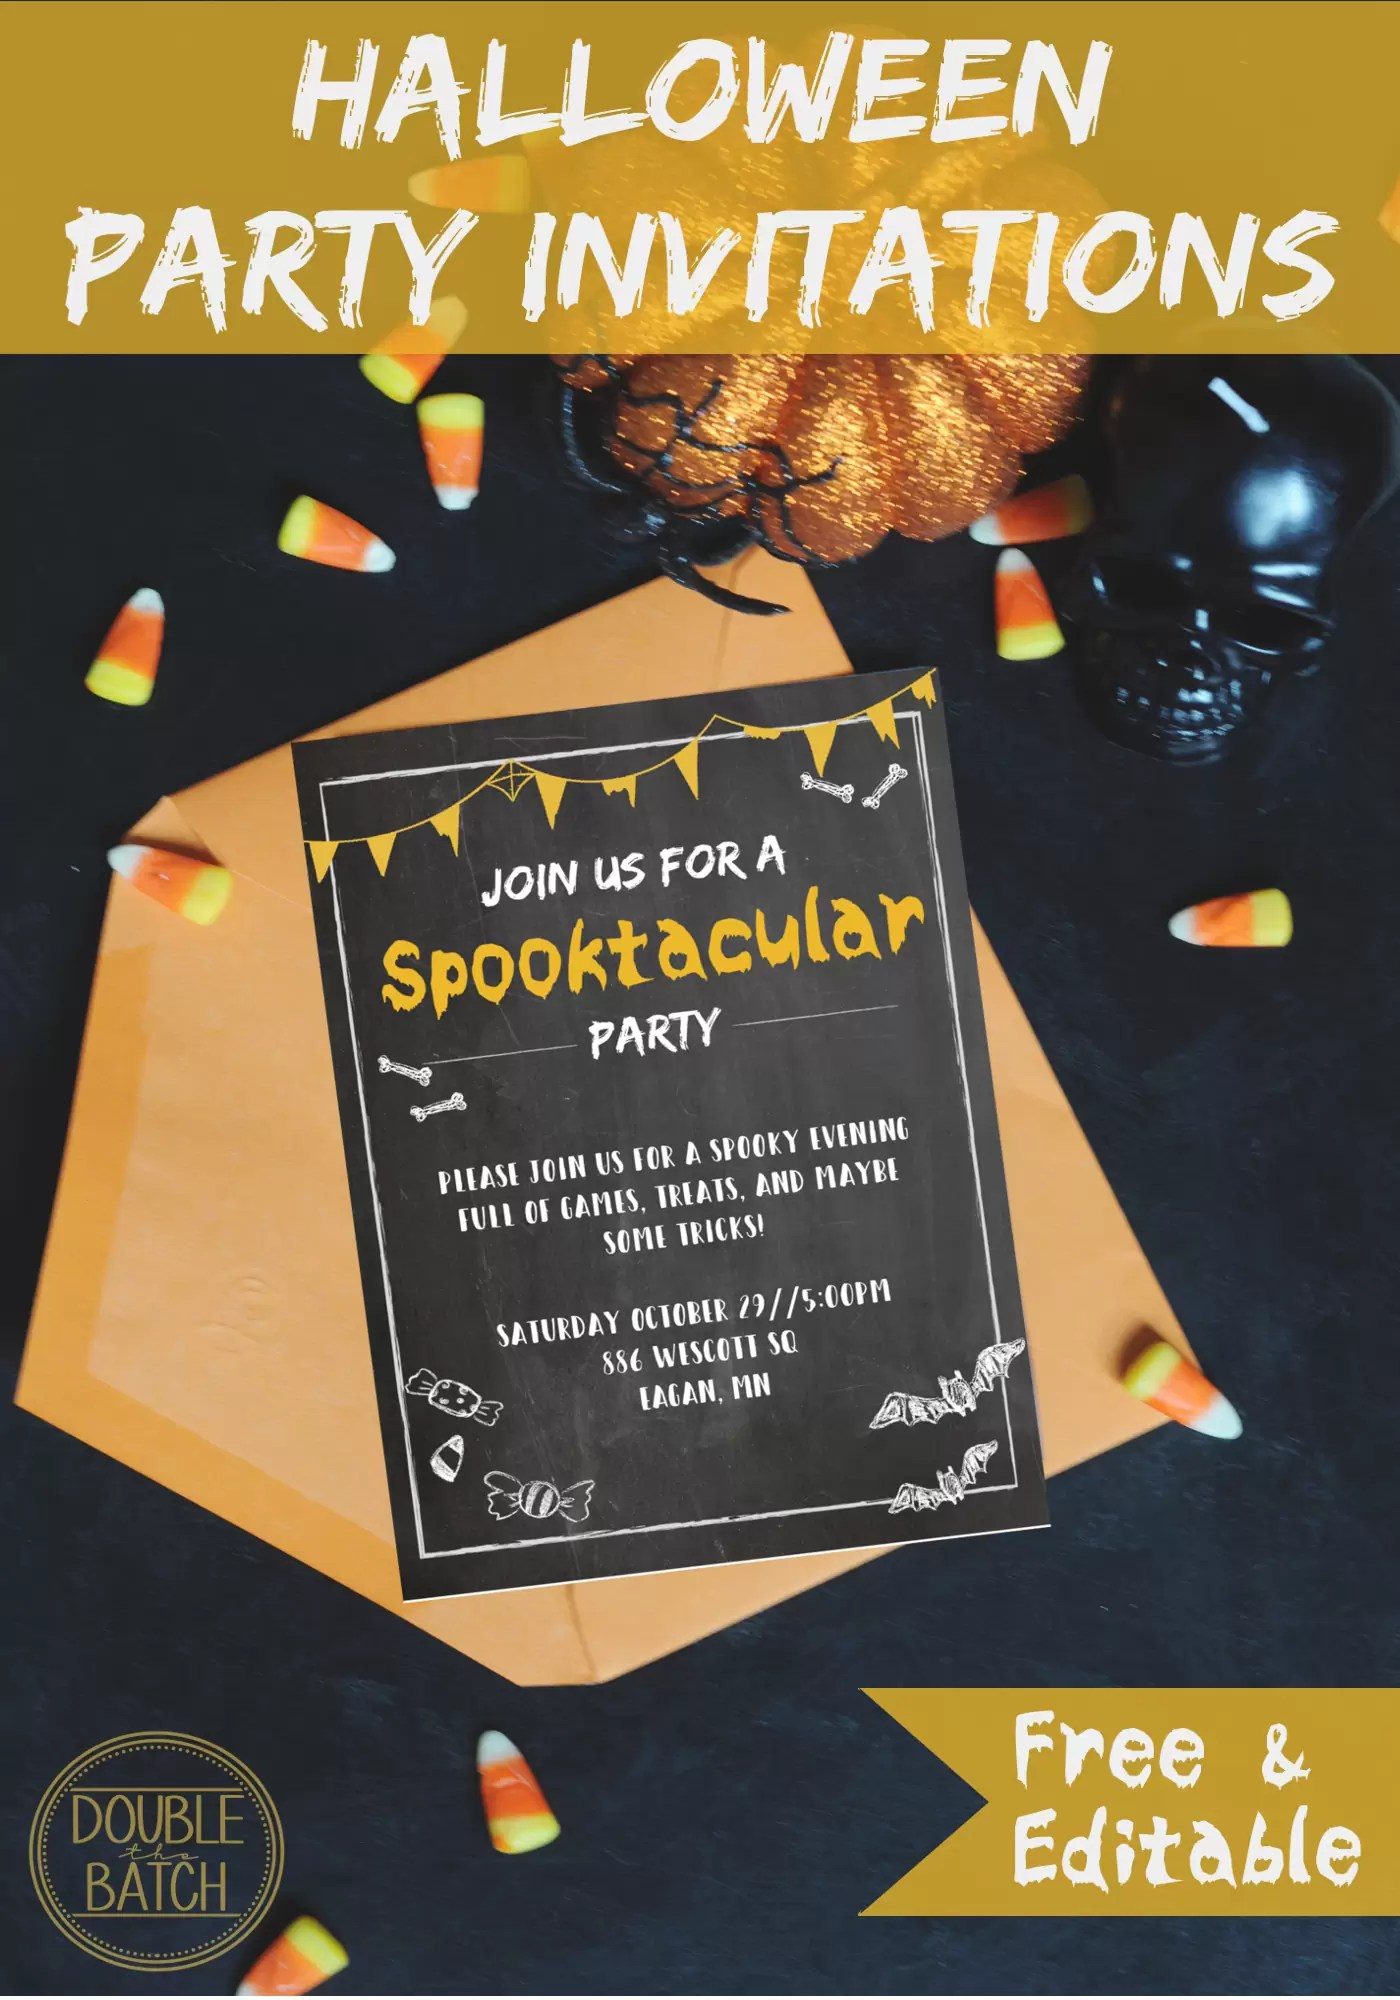 Free Halloween Party Invitations - Uplifting Mayhem